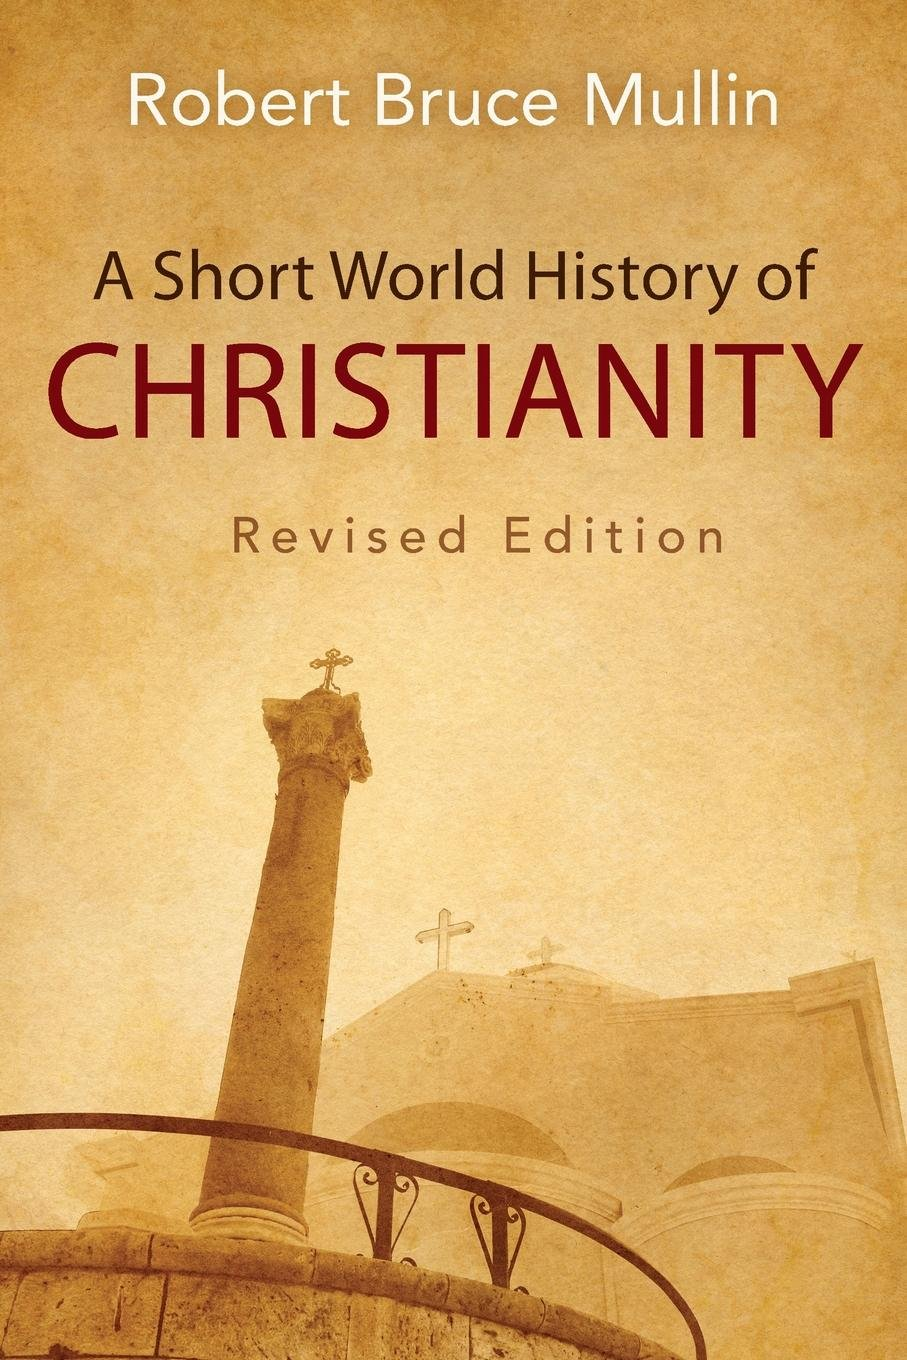 A Short World History Of Christianity Revised Edition Robert Bruce